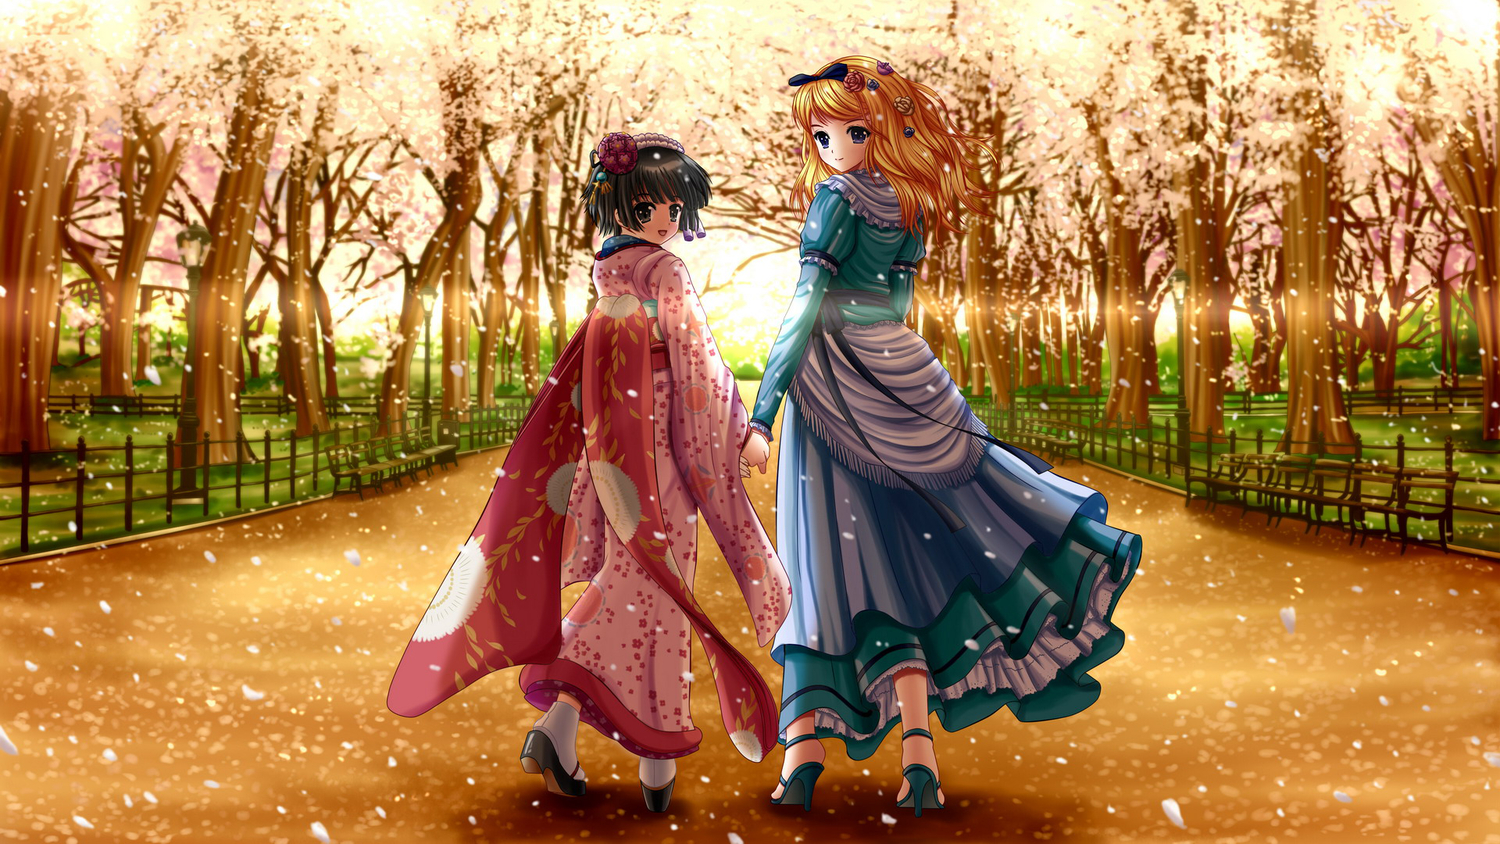 2girls alice_blanche black_hair blonde_hair bow cherry_blossoms dress flowers headdress ikoku_meiro_no_croisee ilolamai japanese_clothes long_hair petals ribbons short_hair sunset yune_(ikoku_meiro_no_croisee)